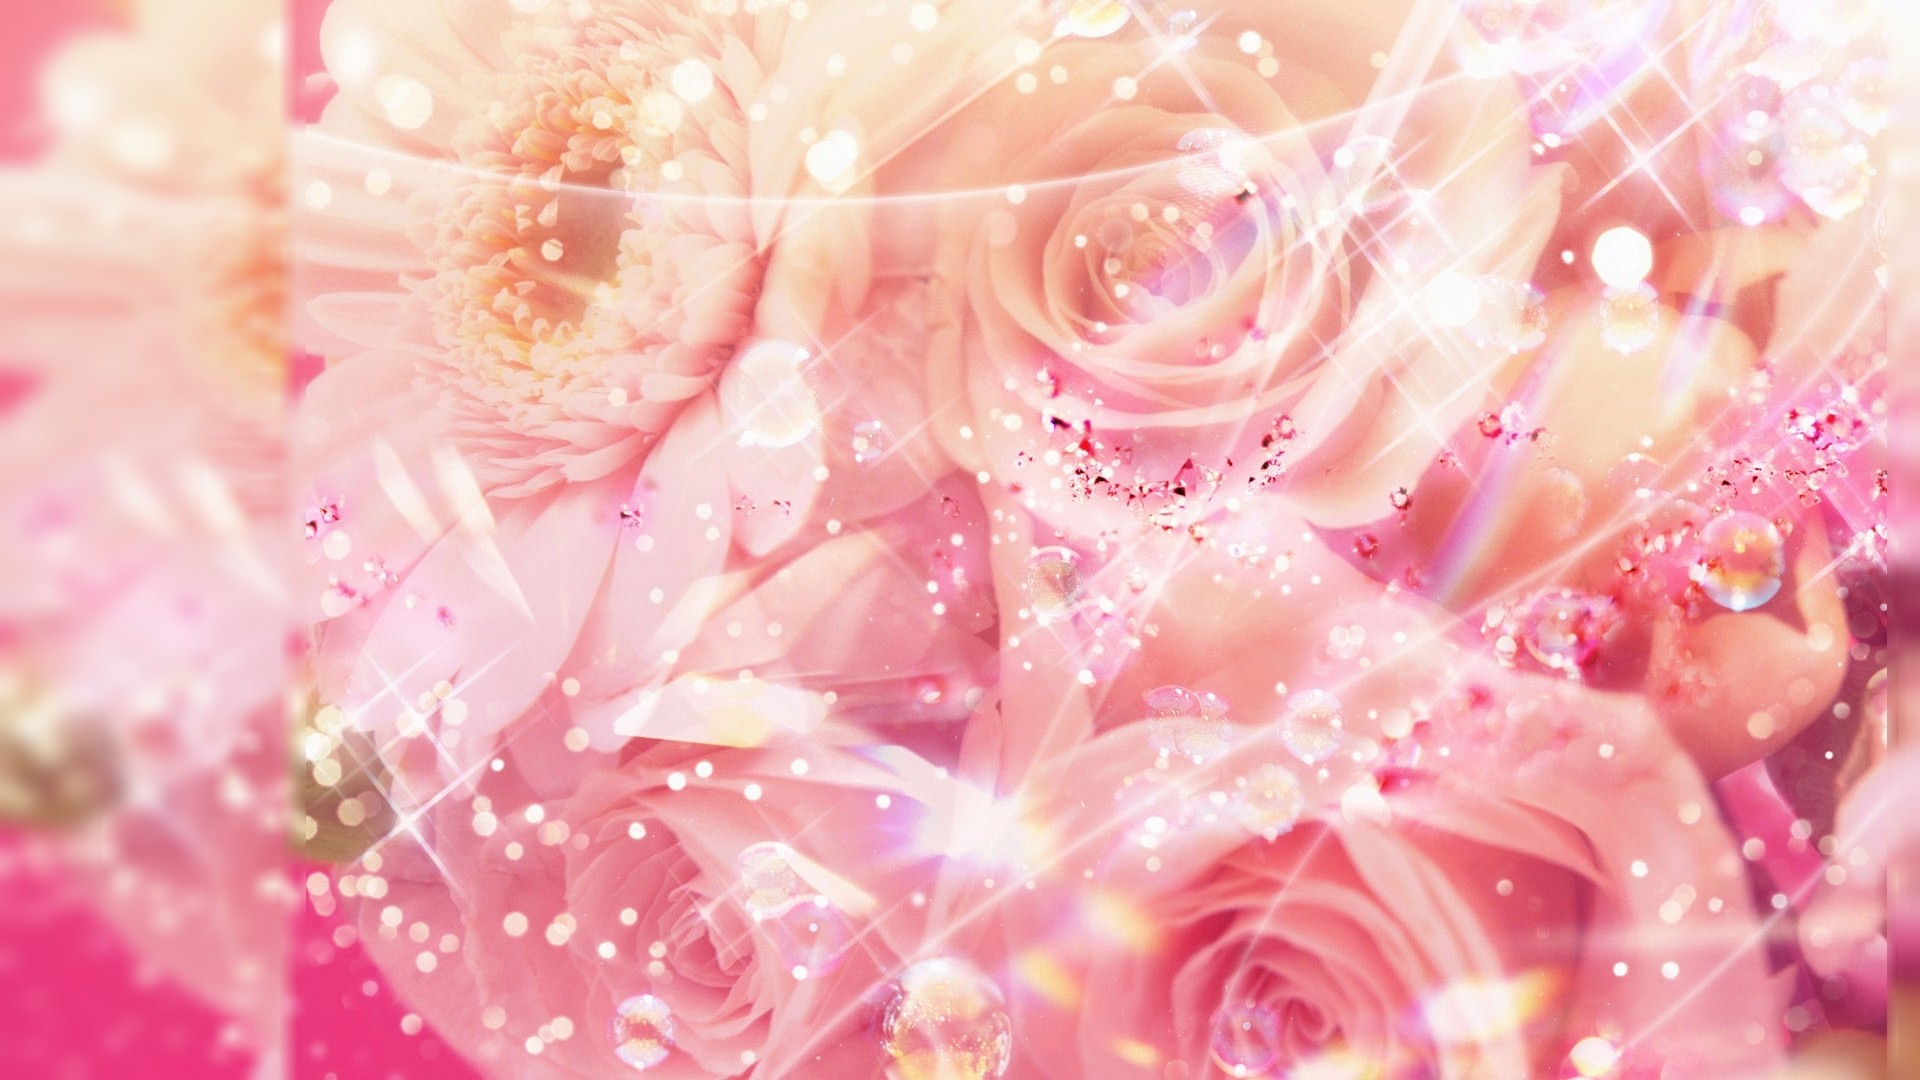 Pretty Girly Wallpapers 58 Images